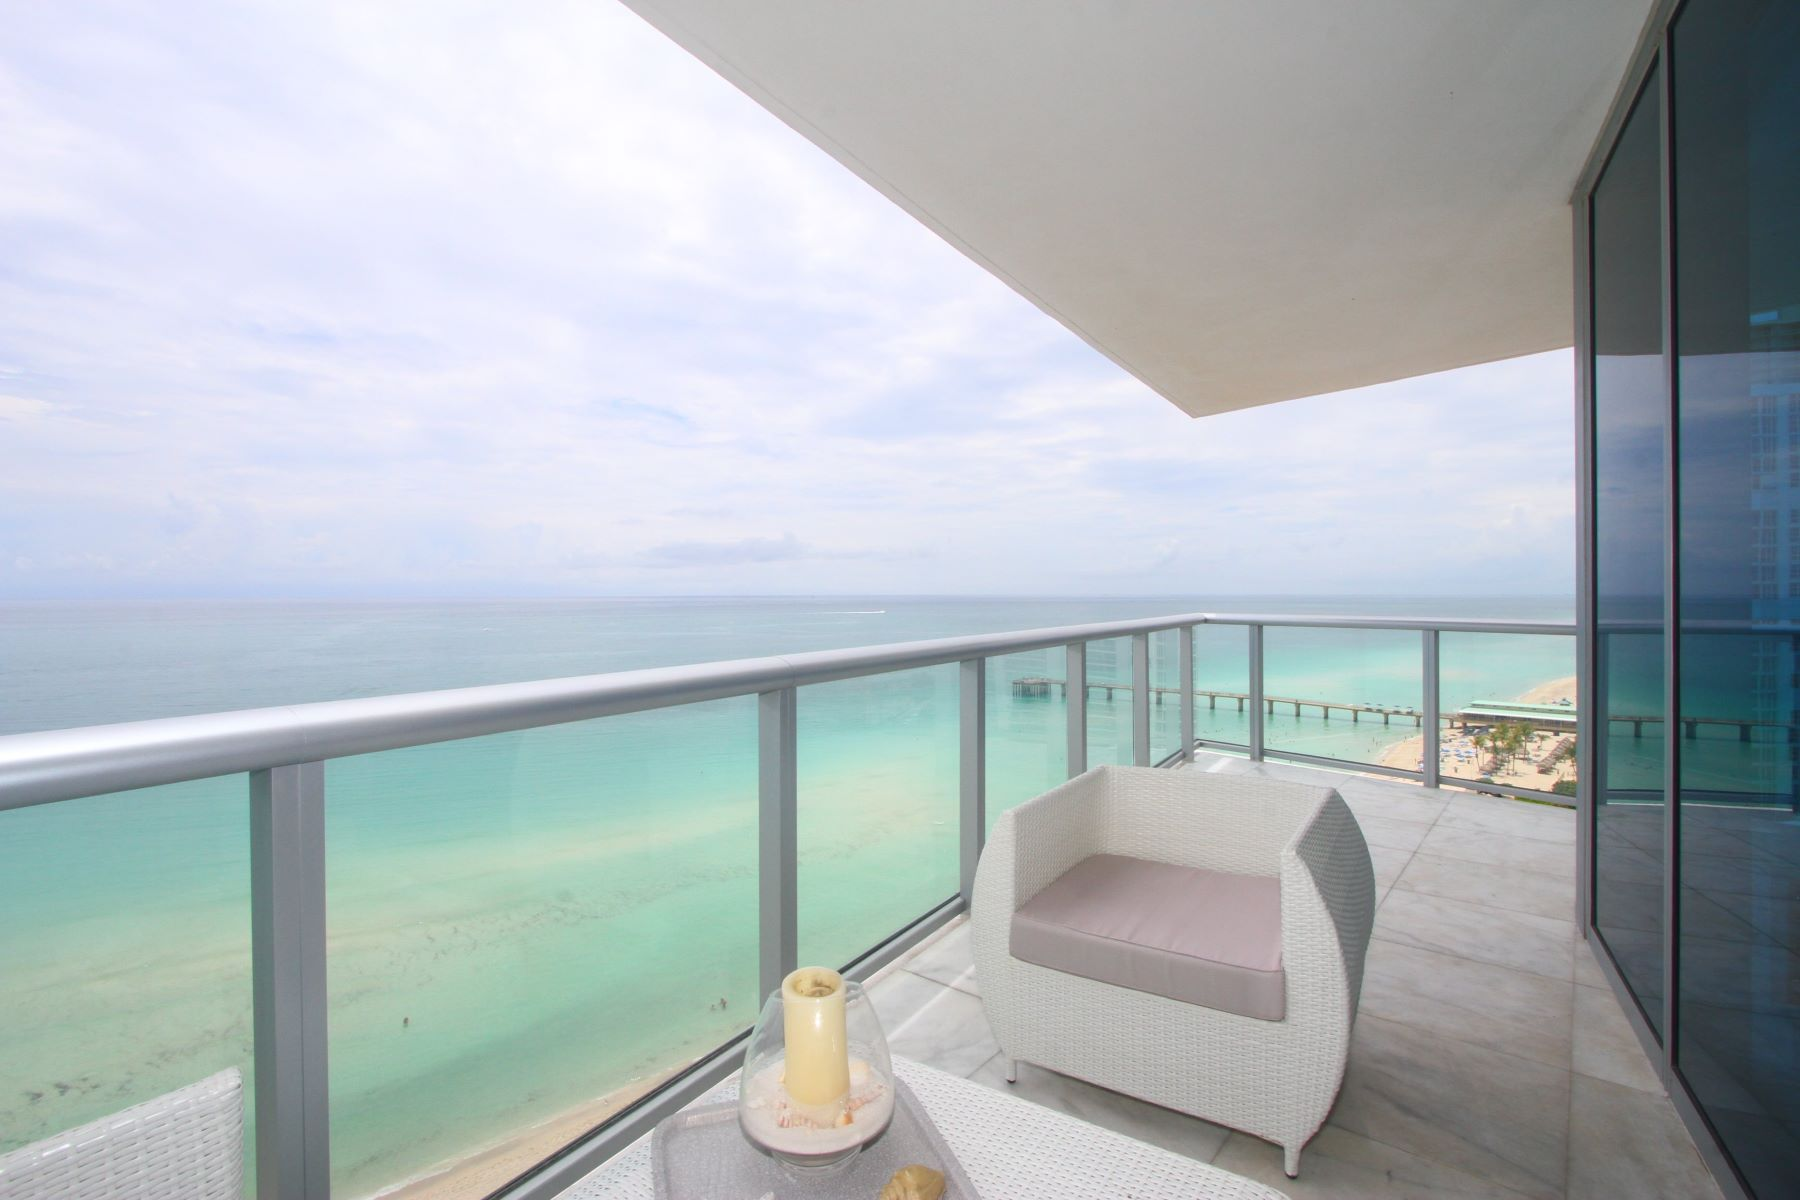 شقة بعمارة للـ Rent في Sunny Isles Beach Residential Rental Sunny Isles Beach, Florida 33160 United States